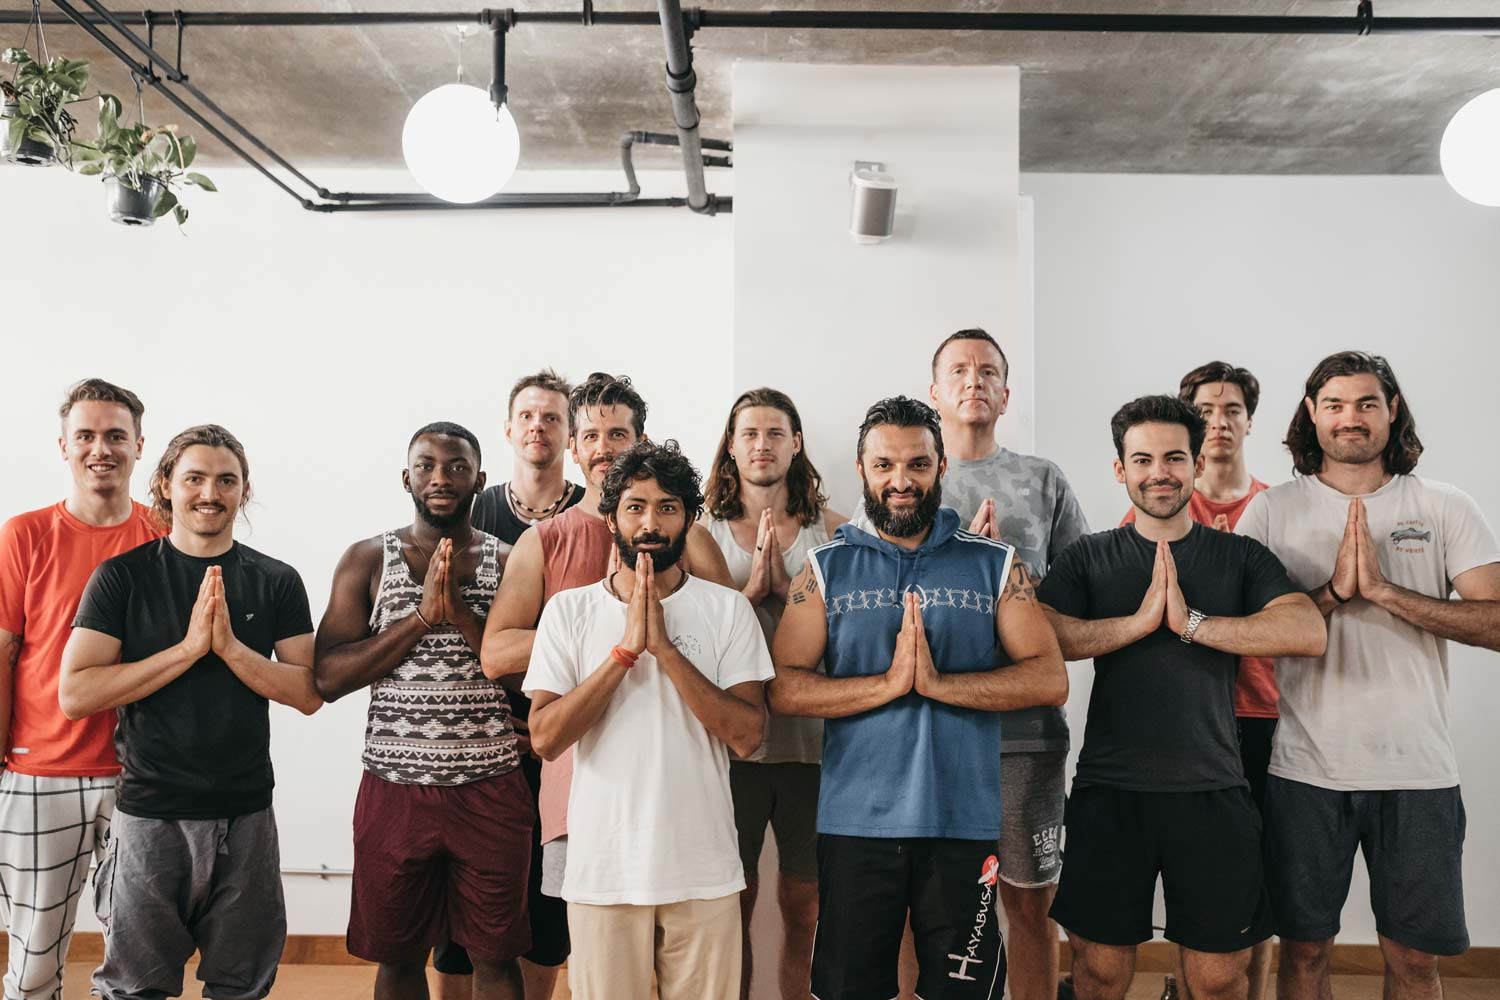 Group of men standing together after a yoga class